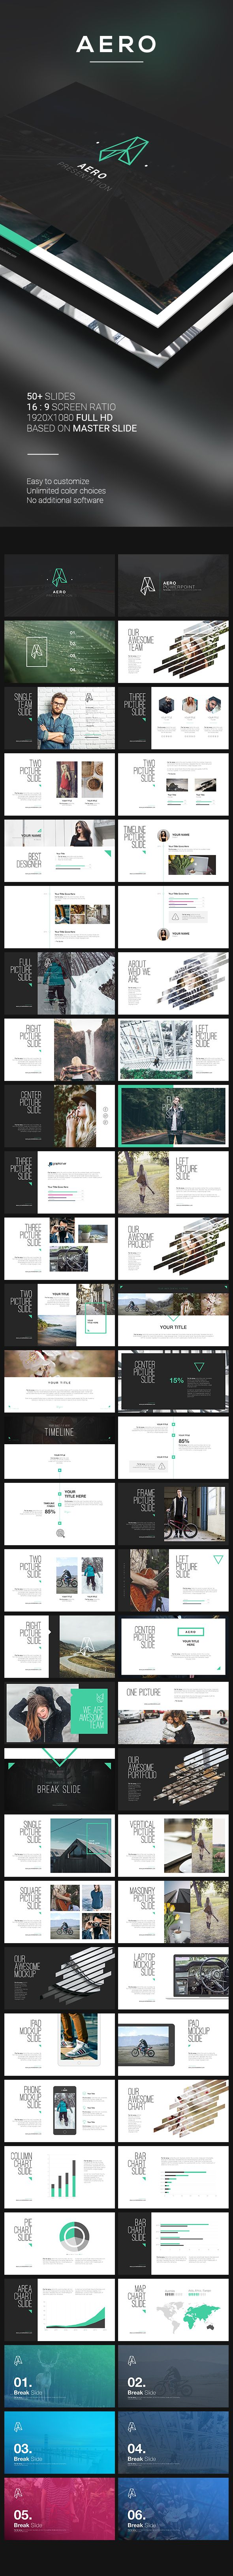 AERO PowerPoint Template  #agency #business #corporate • Available here → http://graphicriver.net/item/aero-powerpoint-template/15867648?ref=pxcr